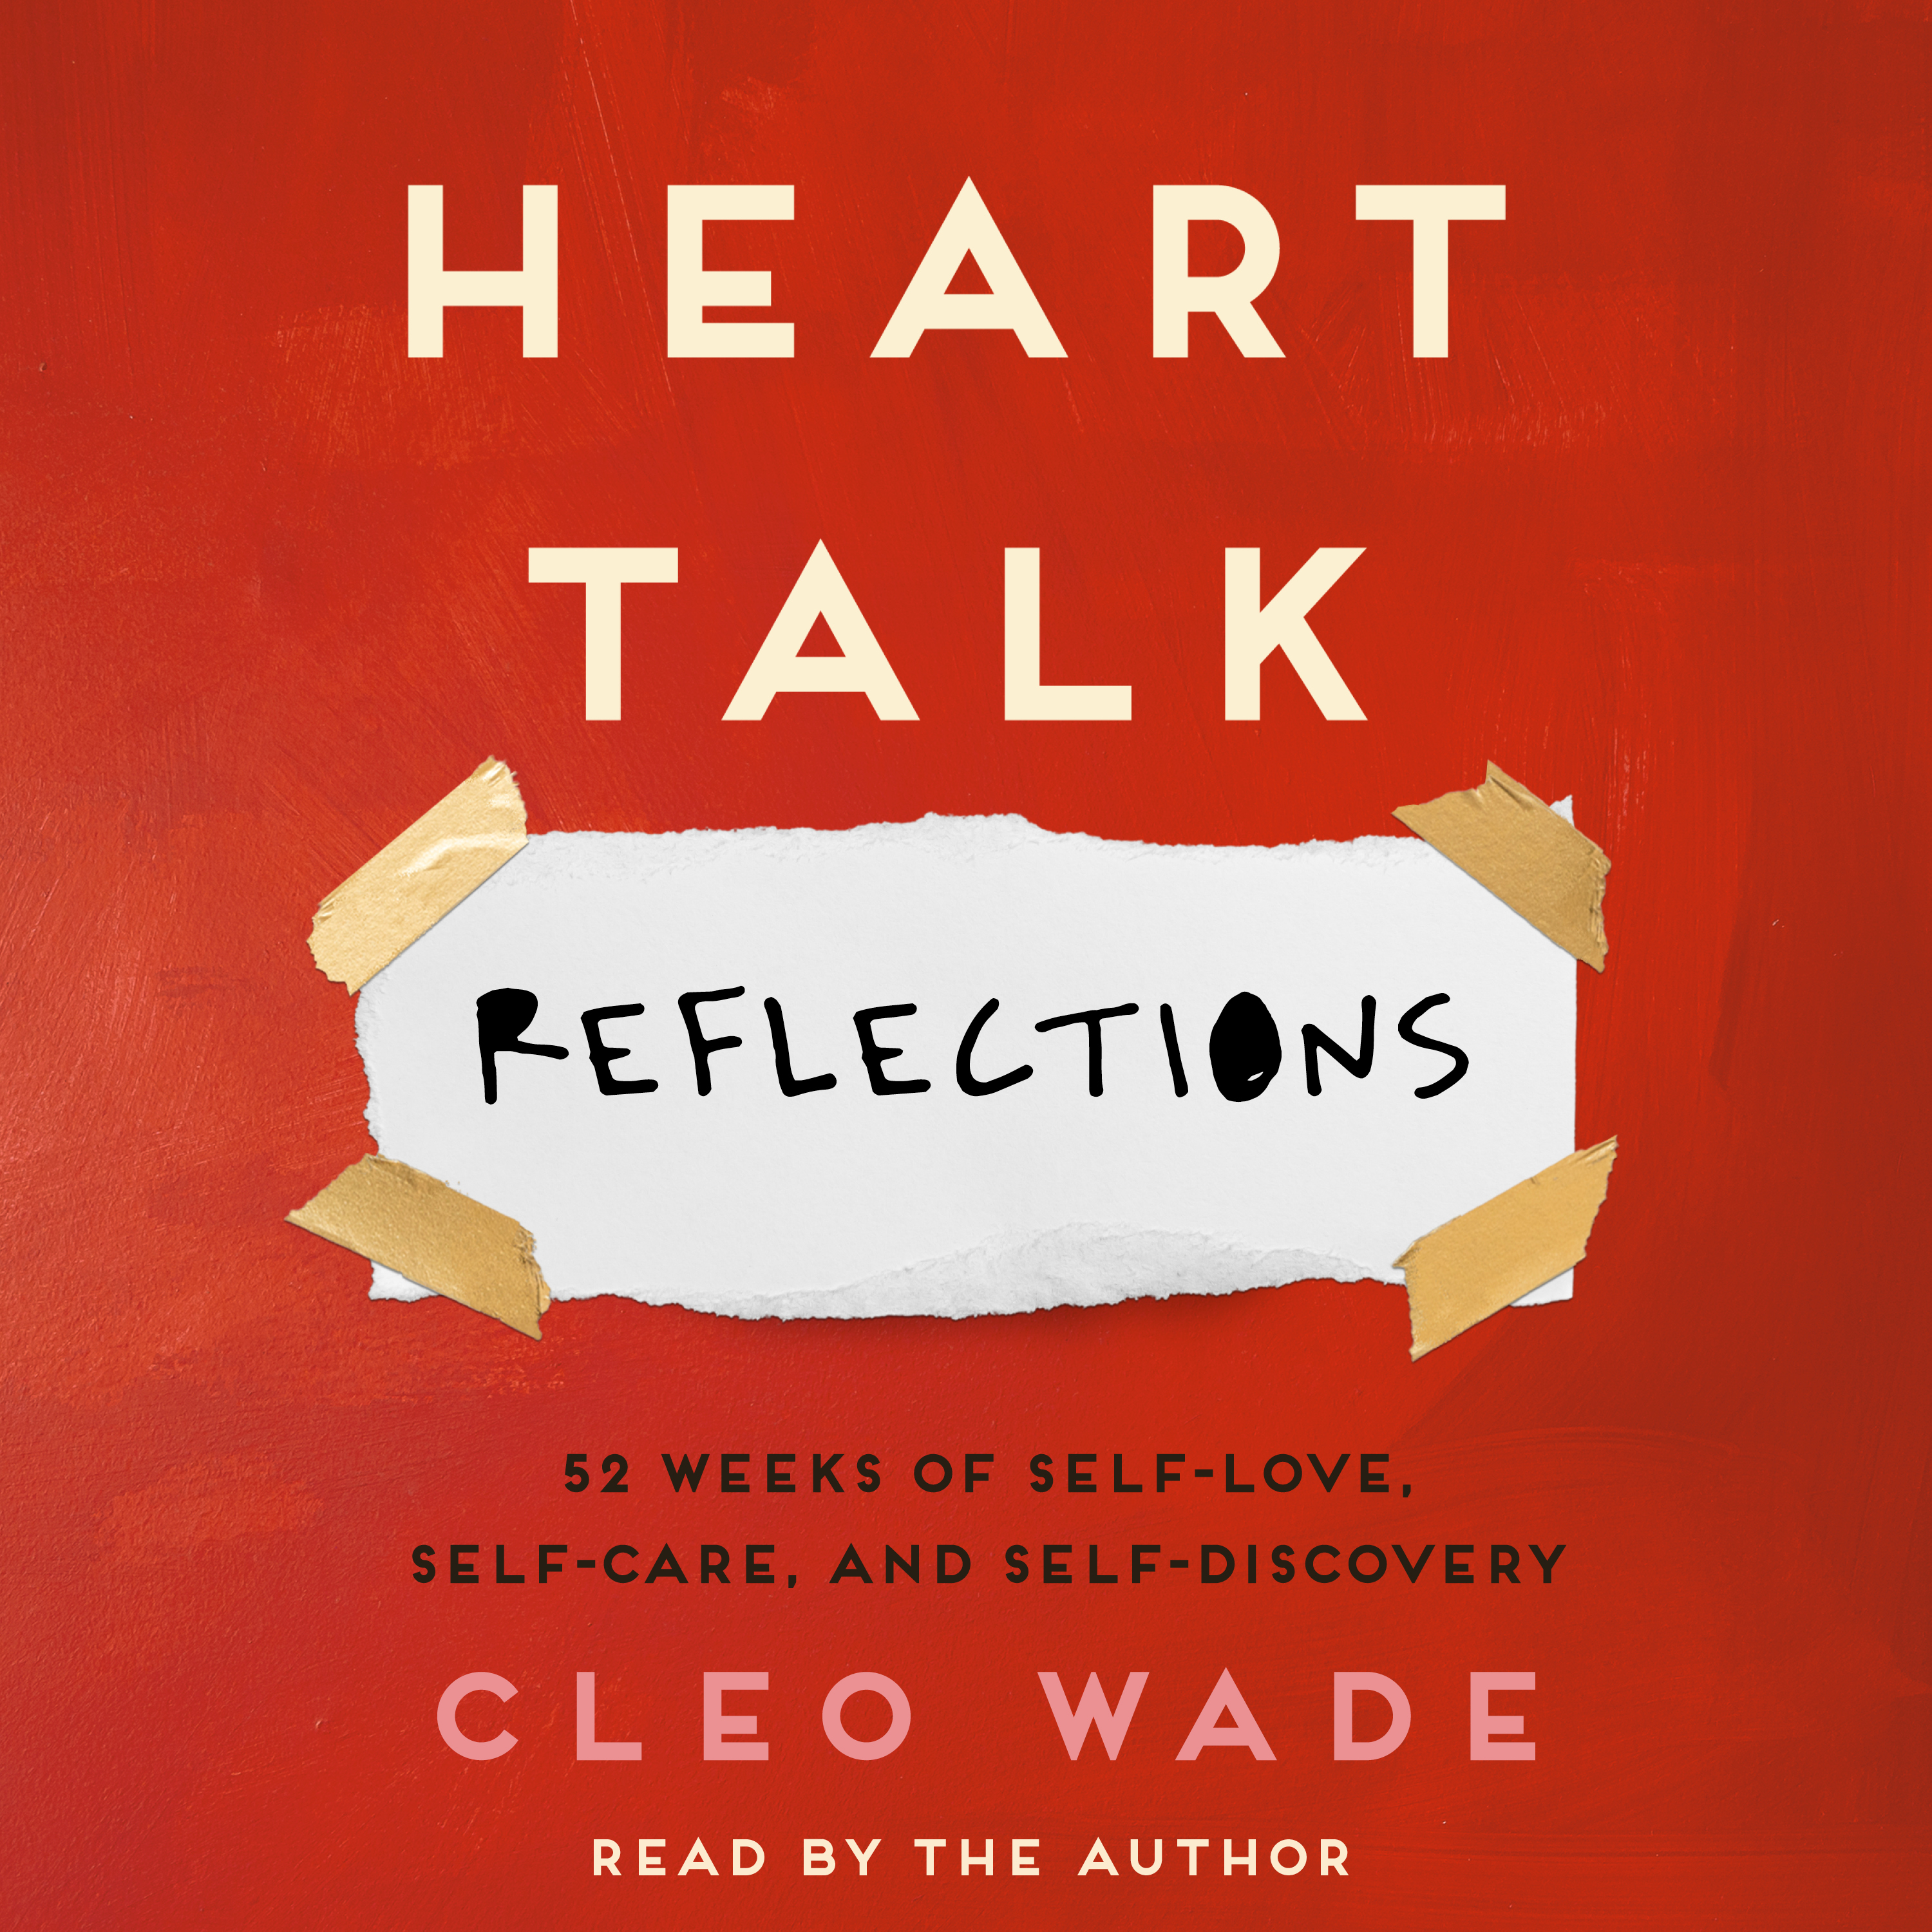 Heart Talk: Reflections